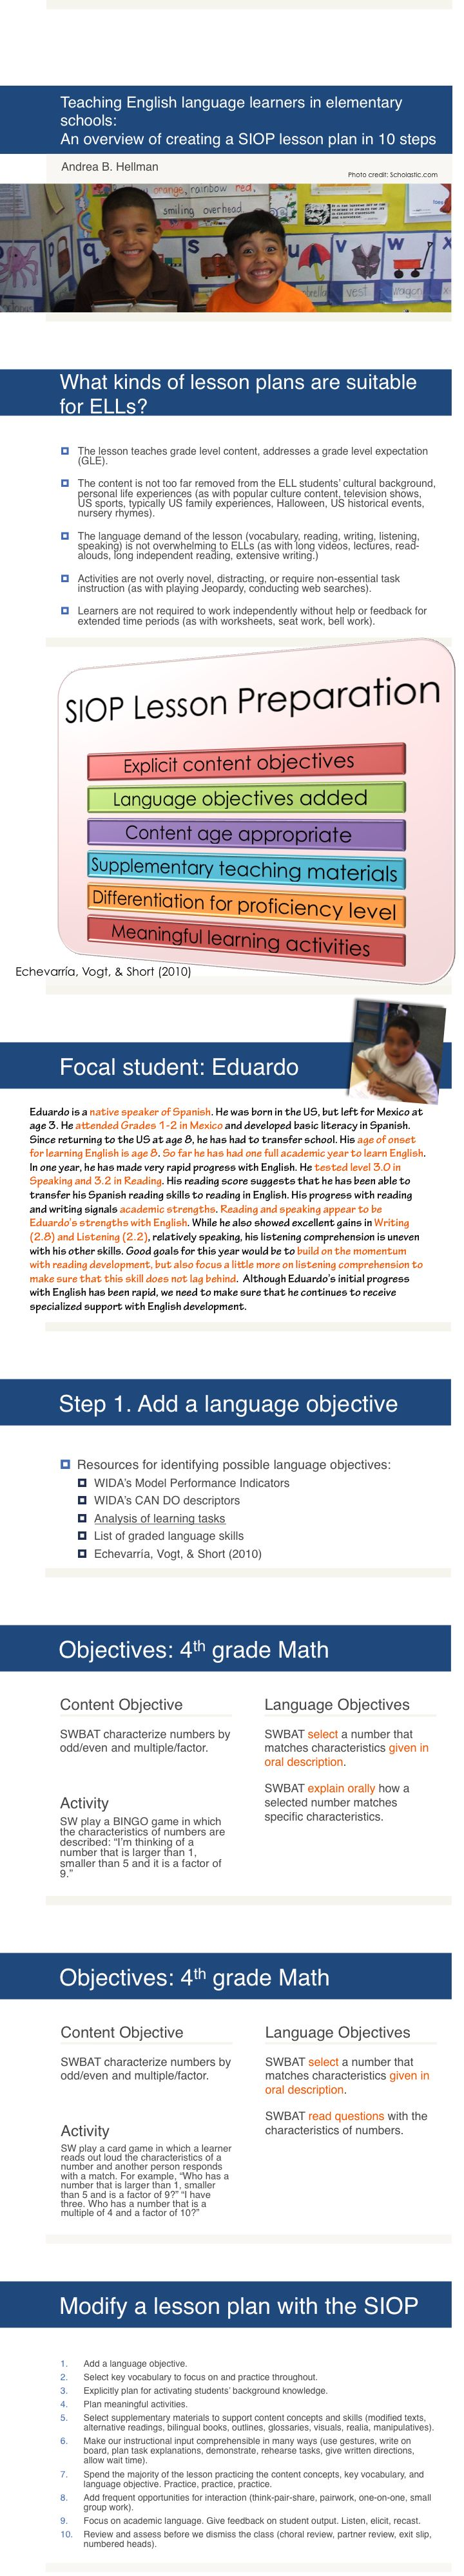 ell siop lesson plans Siop lesson plan templates siop lesson plan template 1 siop lesson plan  template 2 siop lesson plan template 3 siop lesson plan template 4.